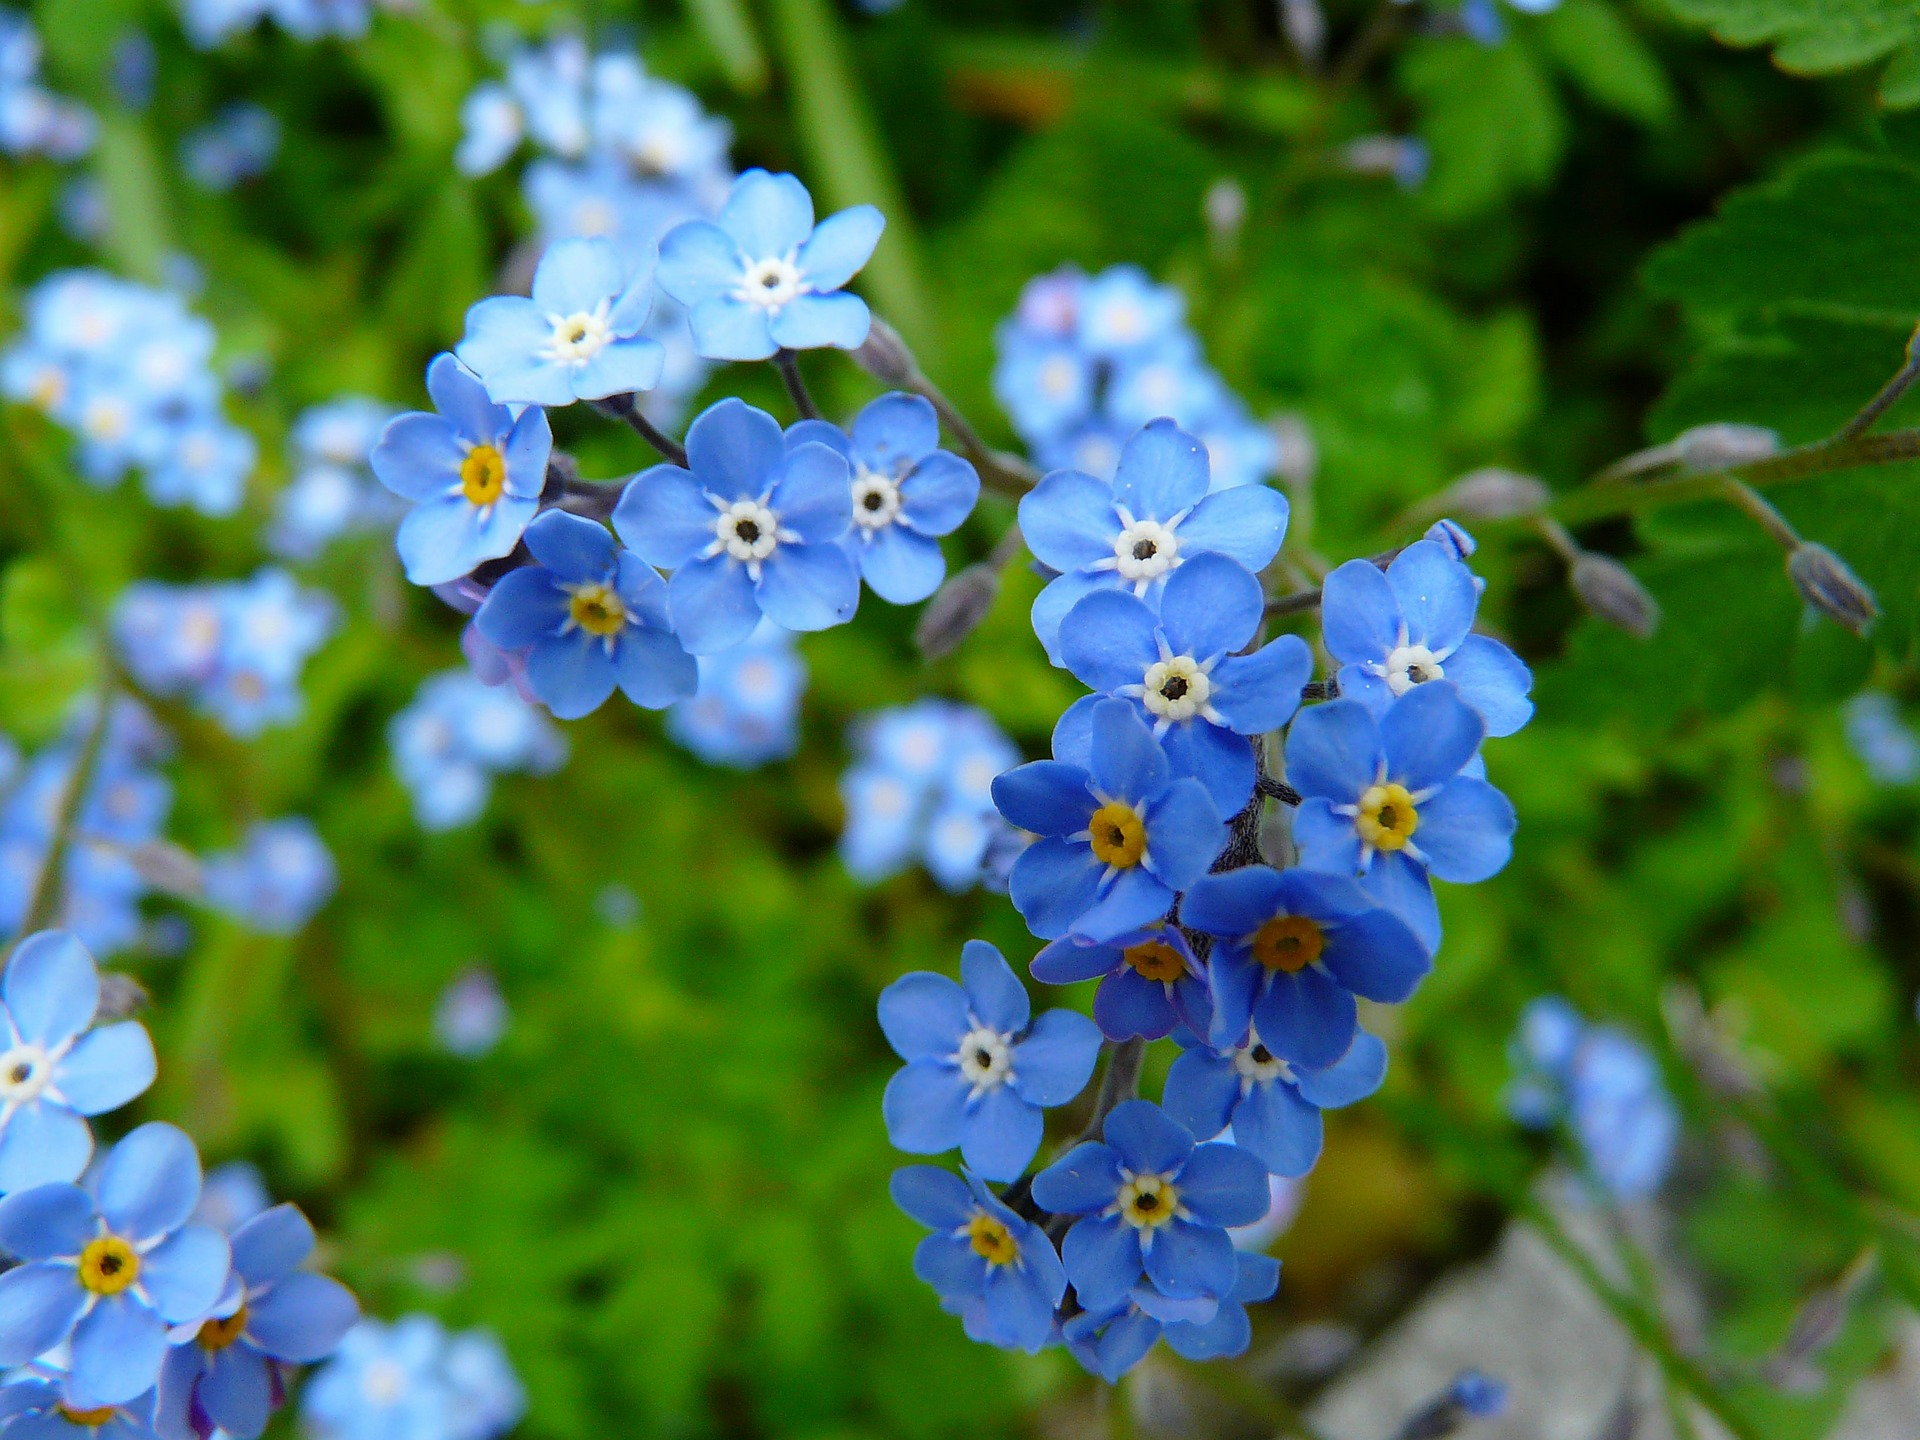 Blue flower representing dreaming of the extraordinary